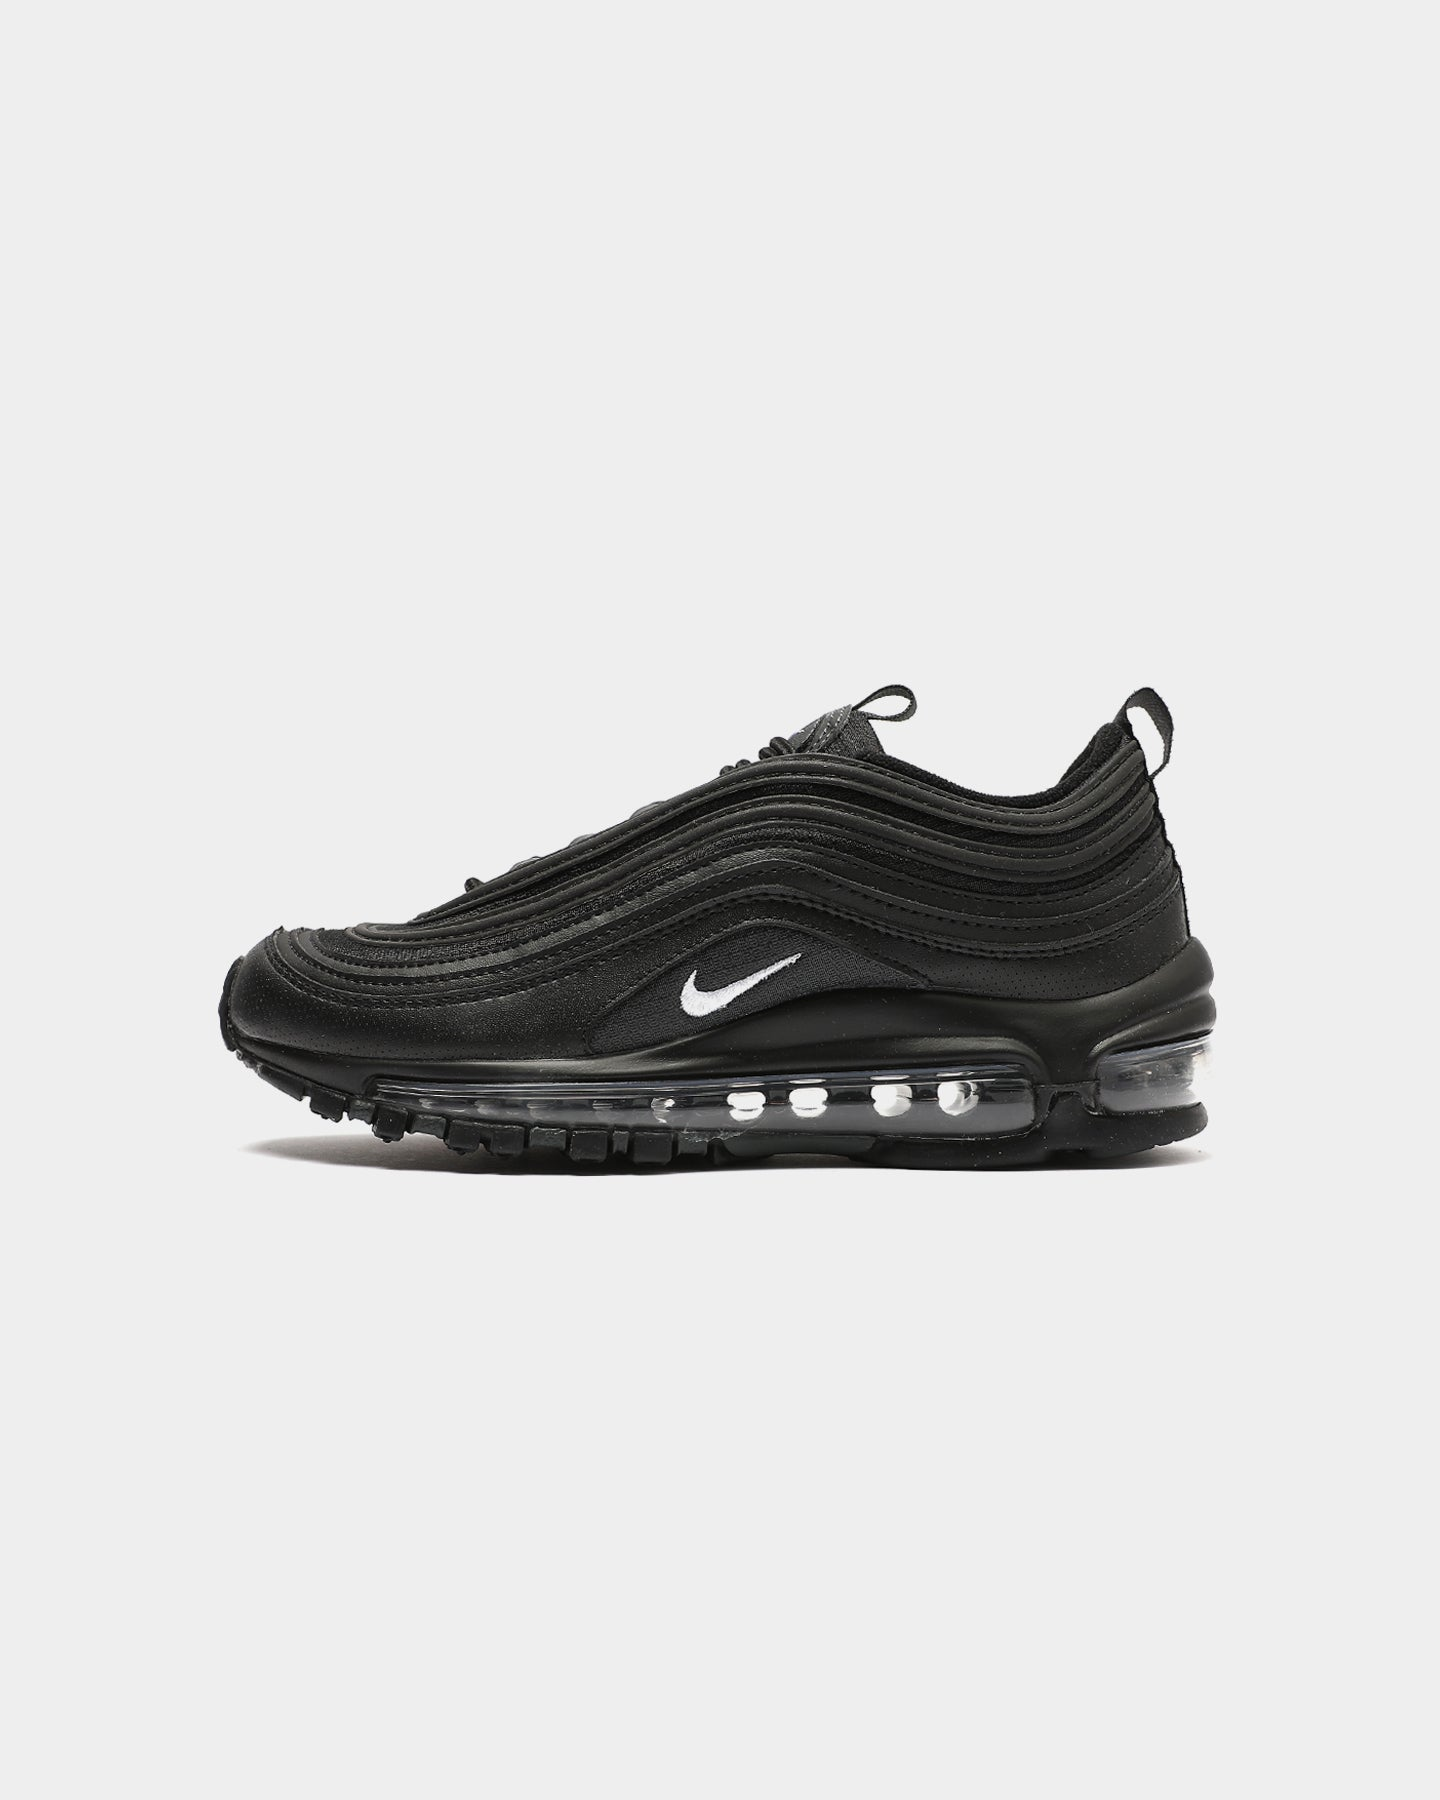 NIKE KIDS AIR MAX 97 (GS) BLACK/WHITE